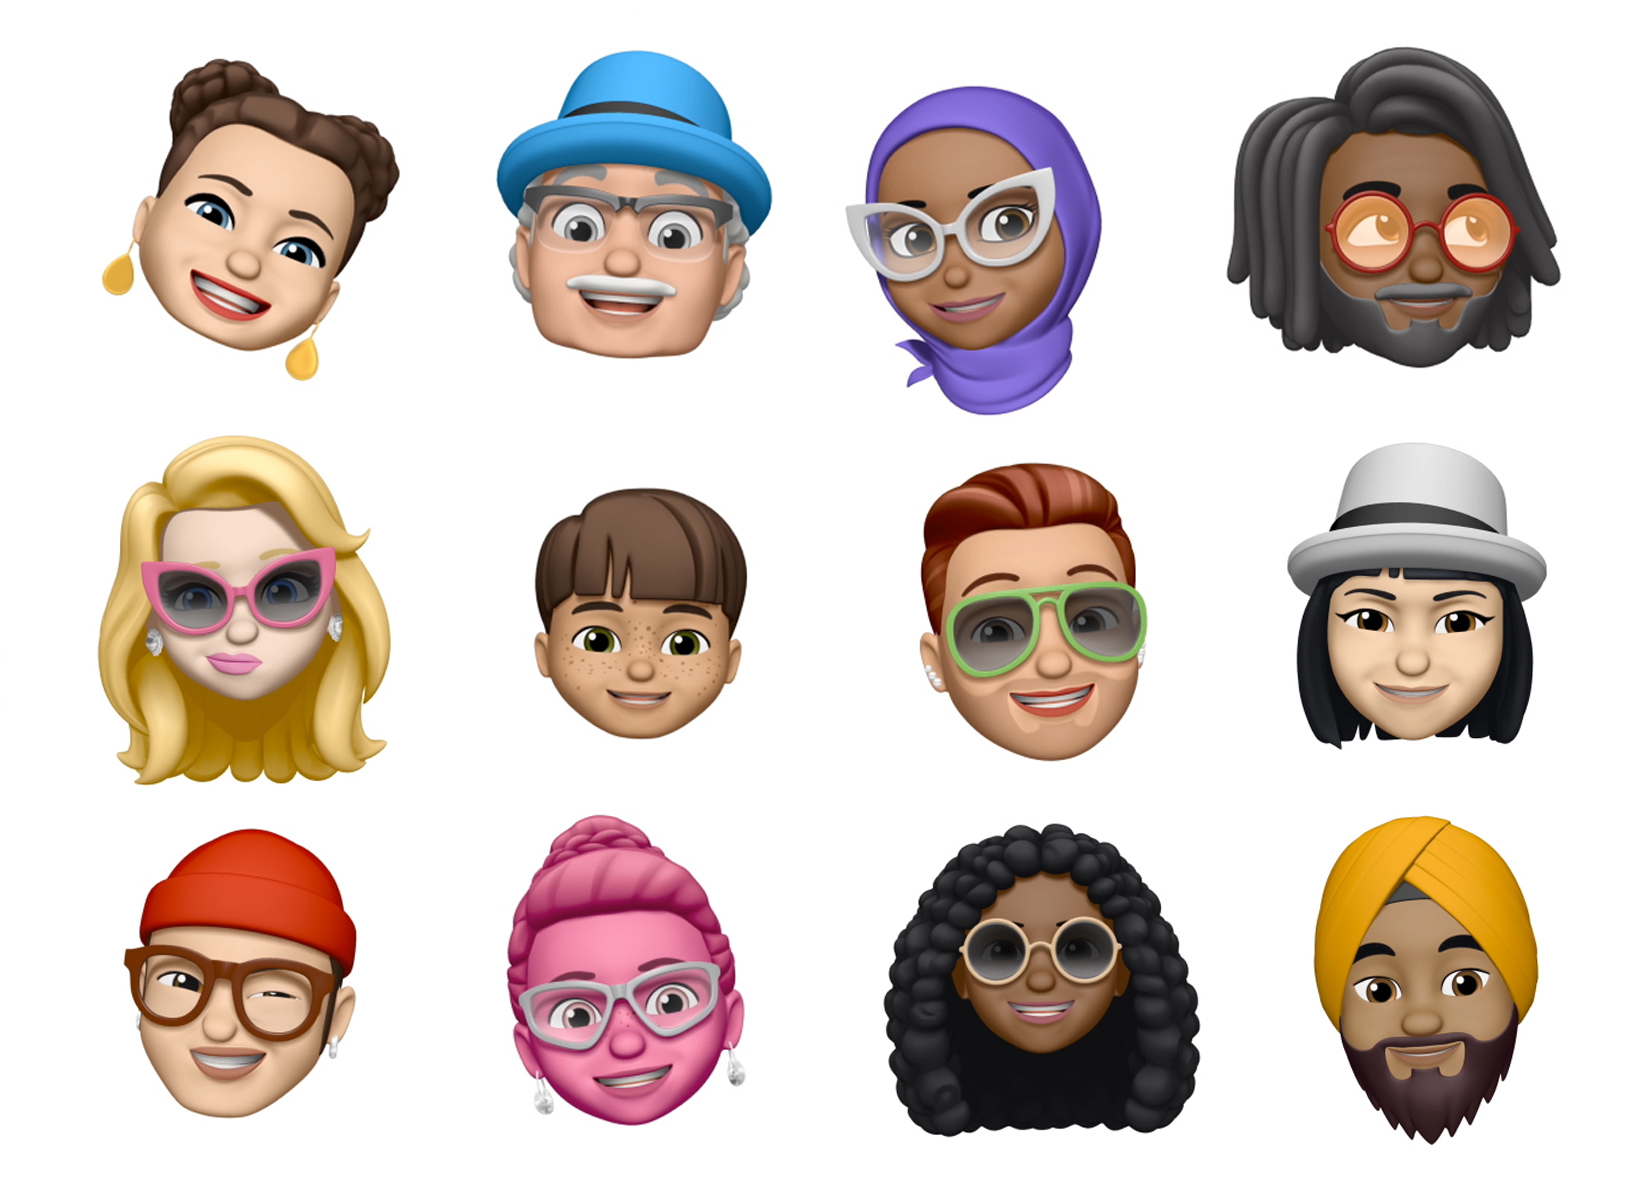 iOS 12 includes new Animoji features and personalized Memoji